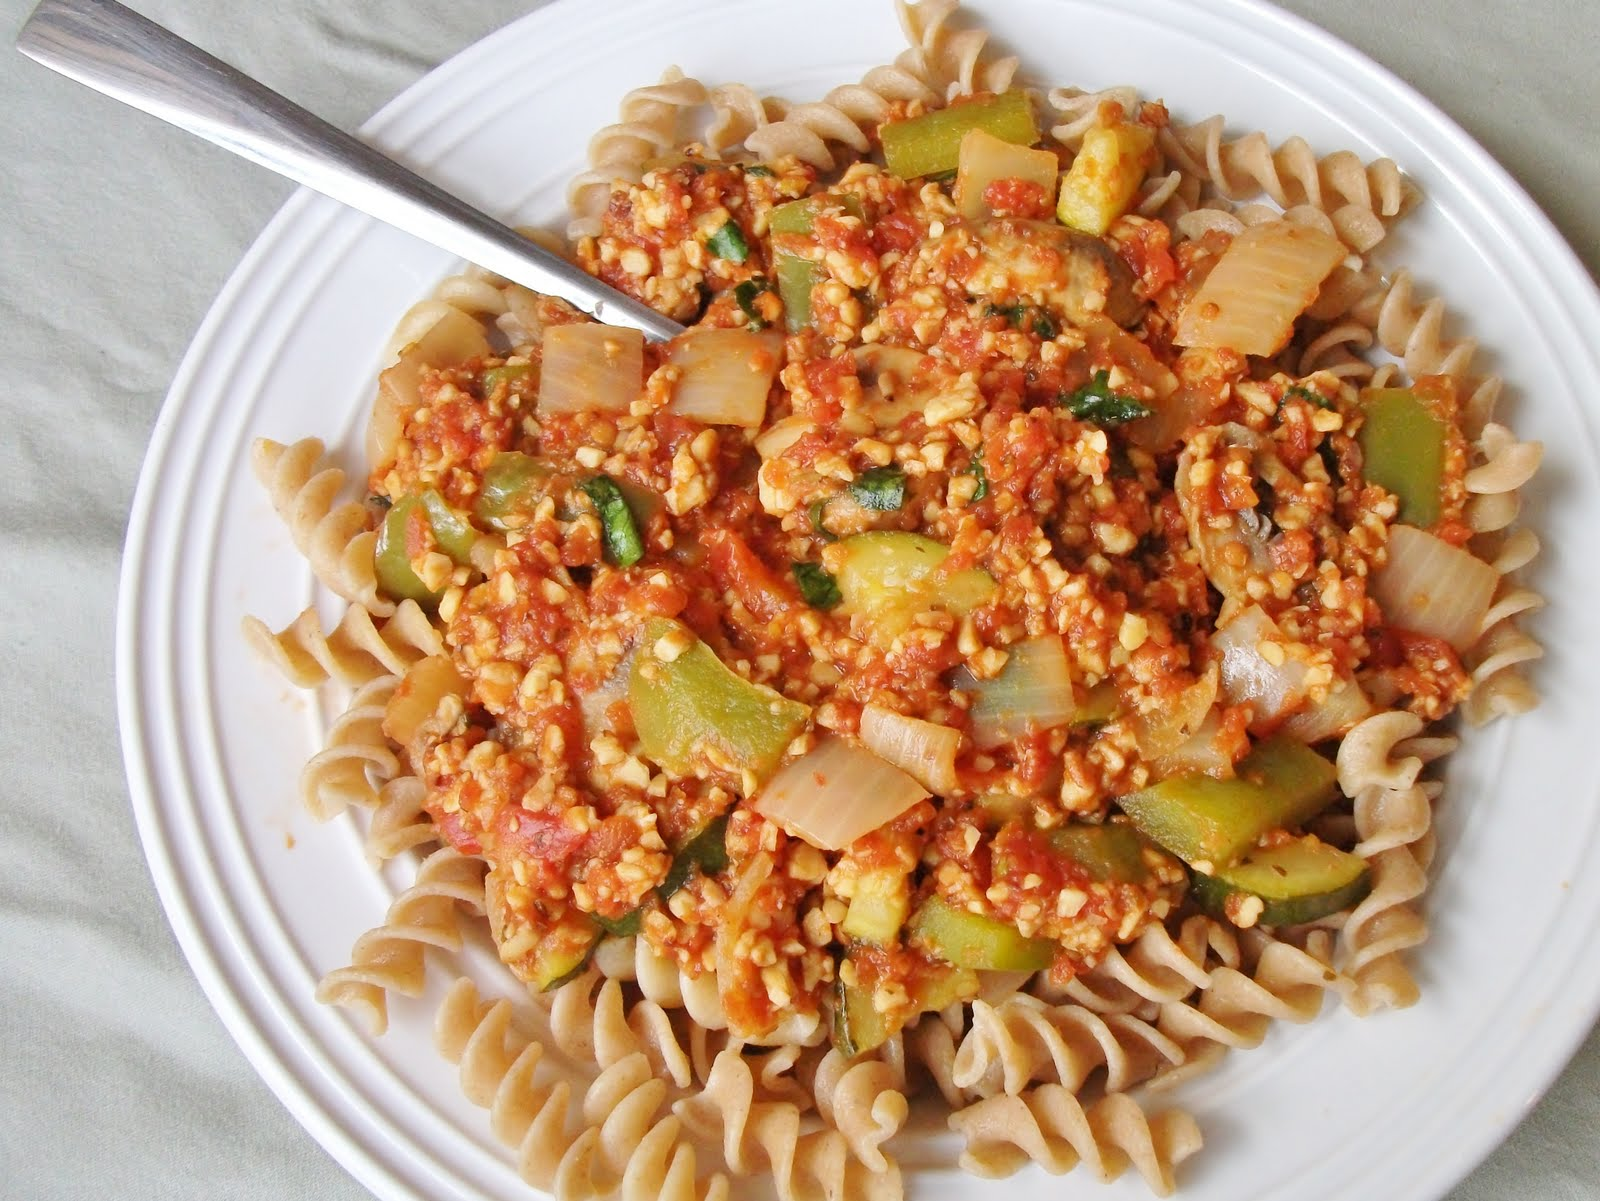 Try this tempeh bolognese for a vegan twist on the classic pasta dish - you won't miss the meat!